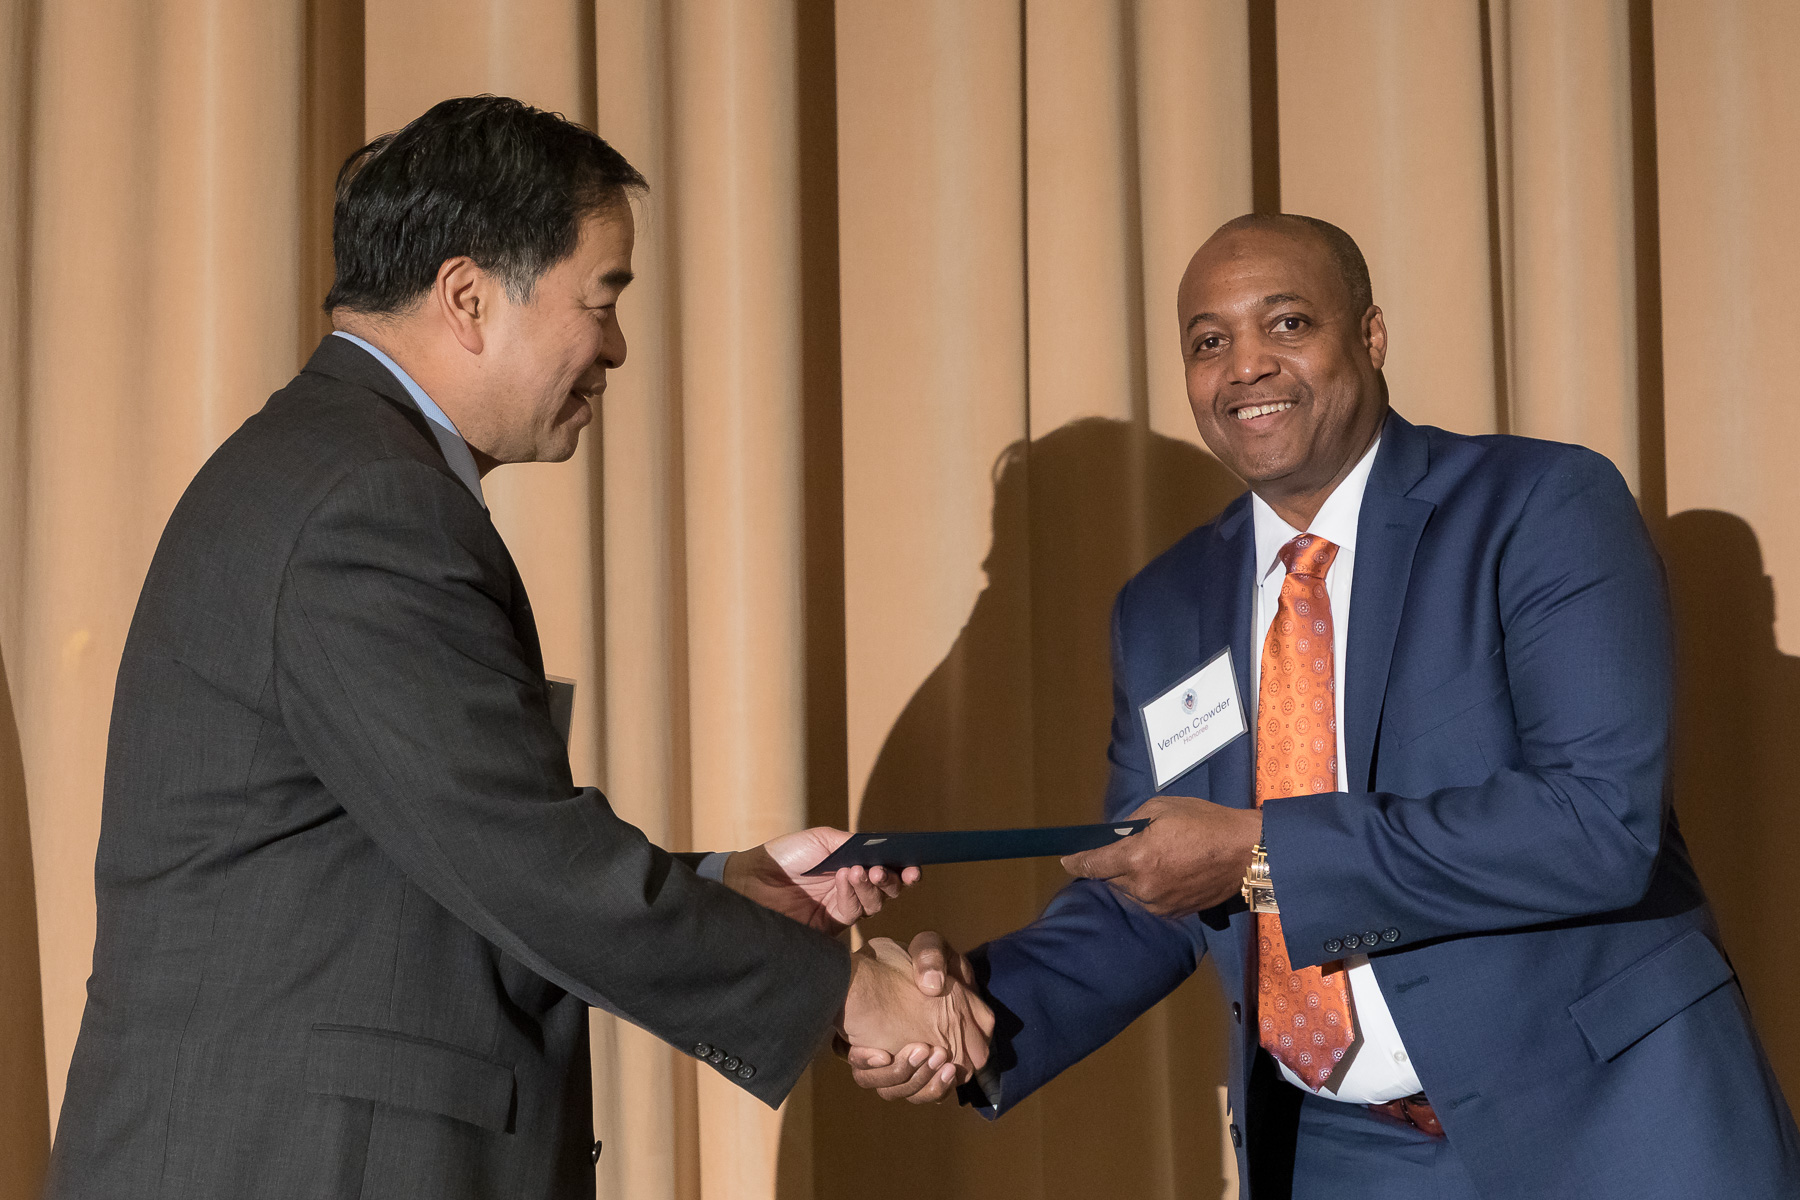 Vernon Crowder, right, with A. Gabriel Esteban, Ph.D., president, as faculty and staff members are inducted into DePaul University's 25 Year Club, Tuesday, Nov. 13, 2018, at the Lincoln Park Student Center. Employees celebrating their 25th work anniversary were honored at the luncheon with their colleagues and will have their names added to plaques located on the Loop and Lincoln Park Campuses. (DePaul University/Jeff Carrion)